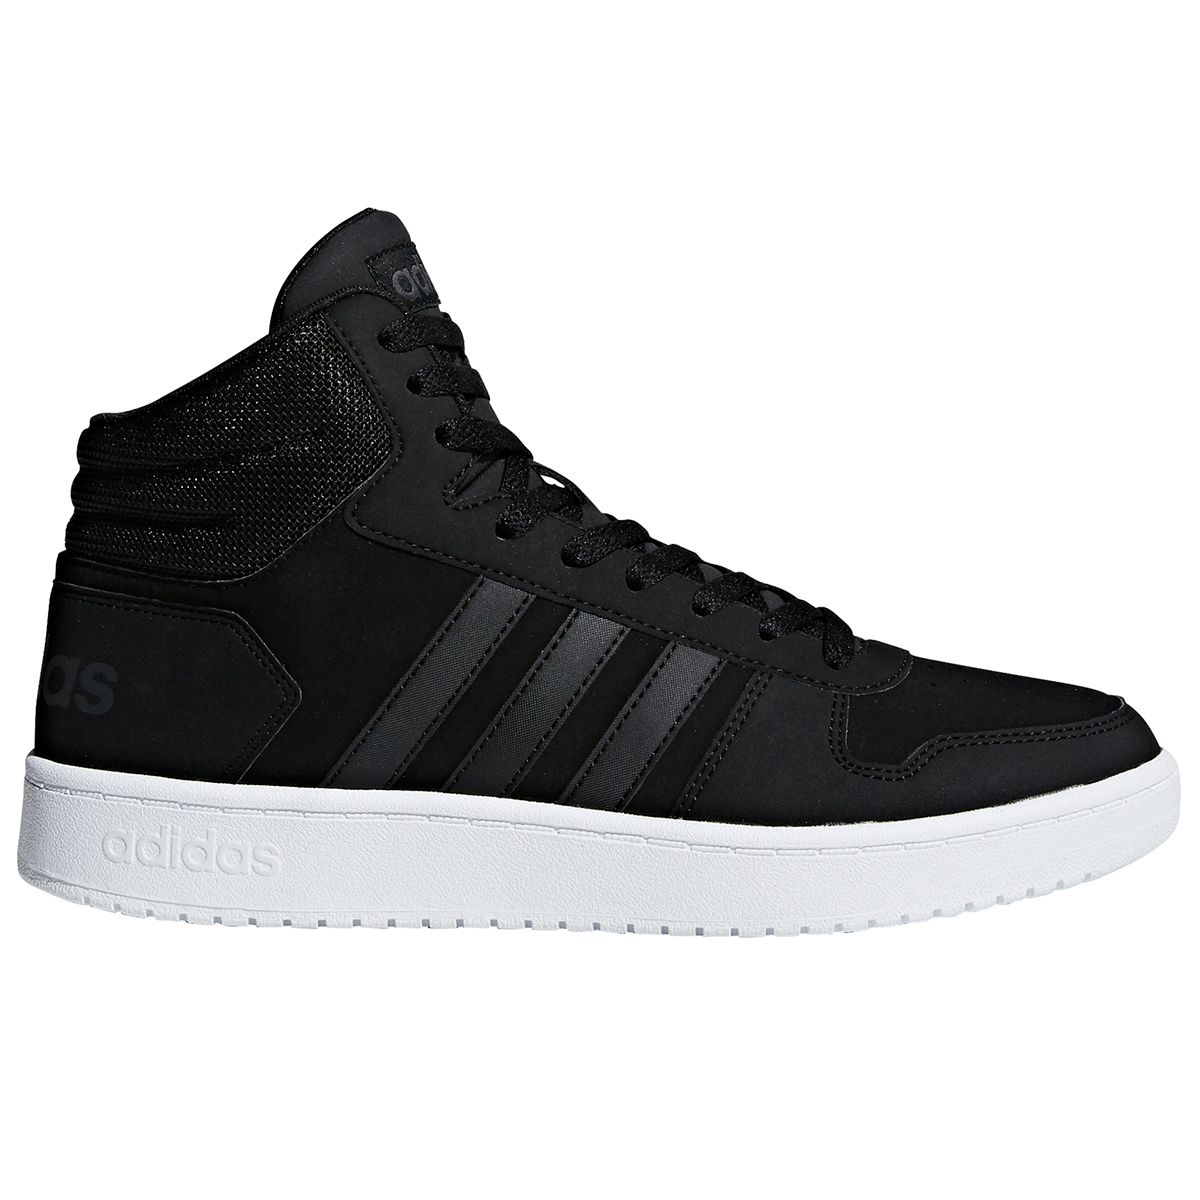 Adidas Men's Hoops 2.0 Mid Basketball Shoes - Black, 9